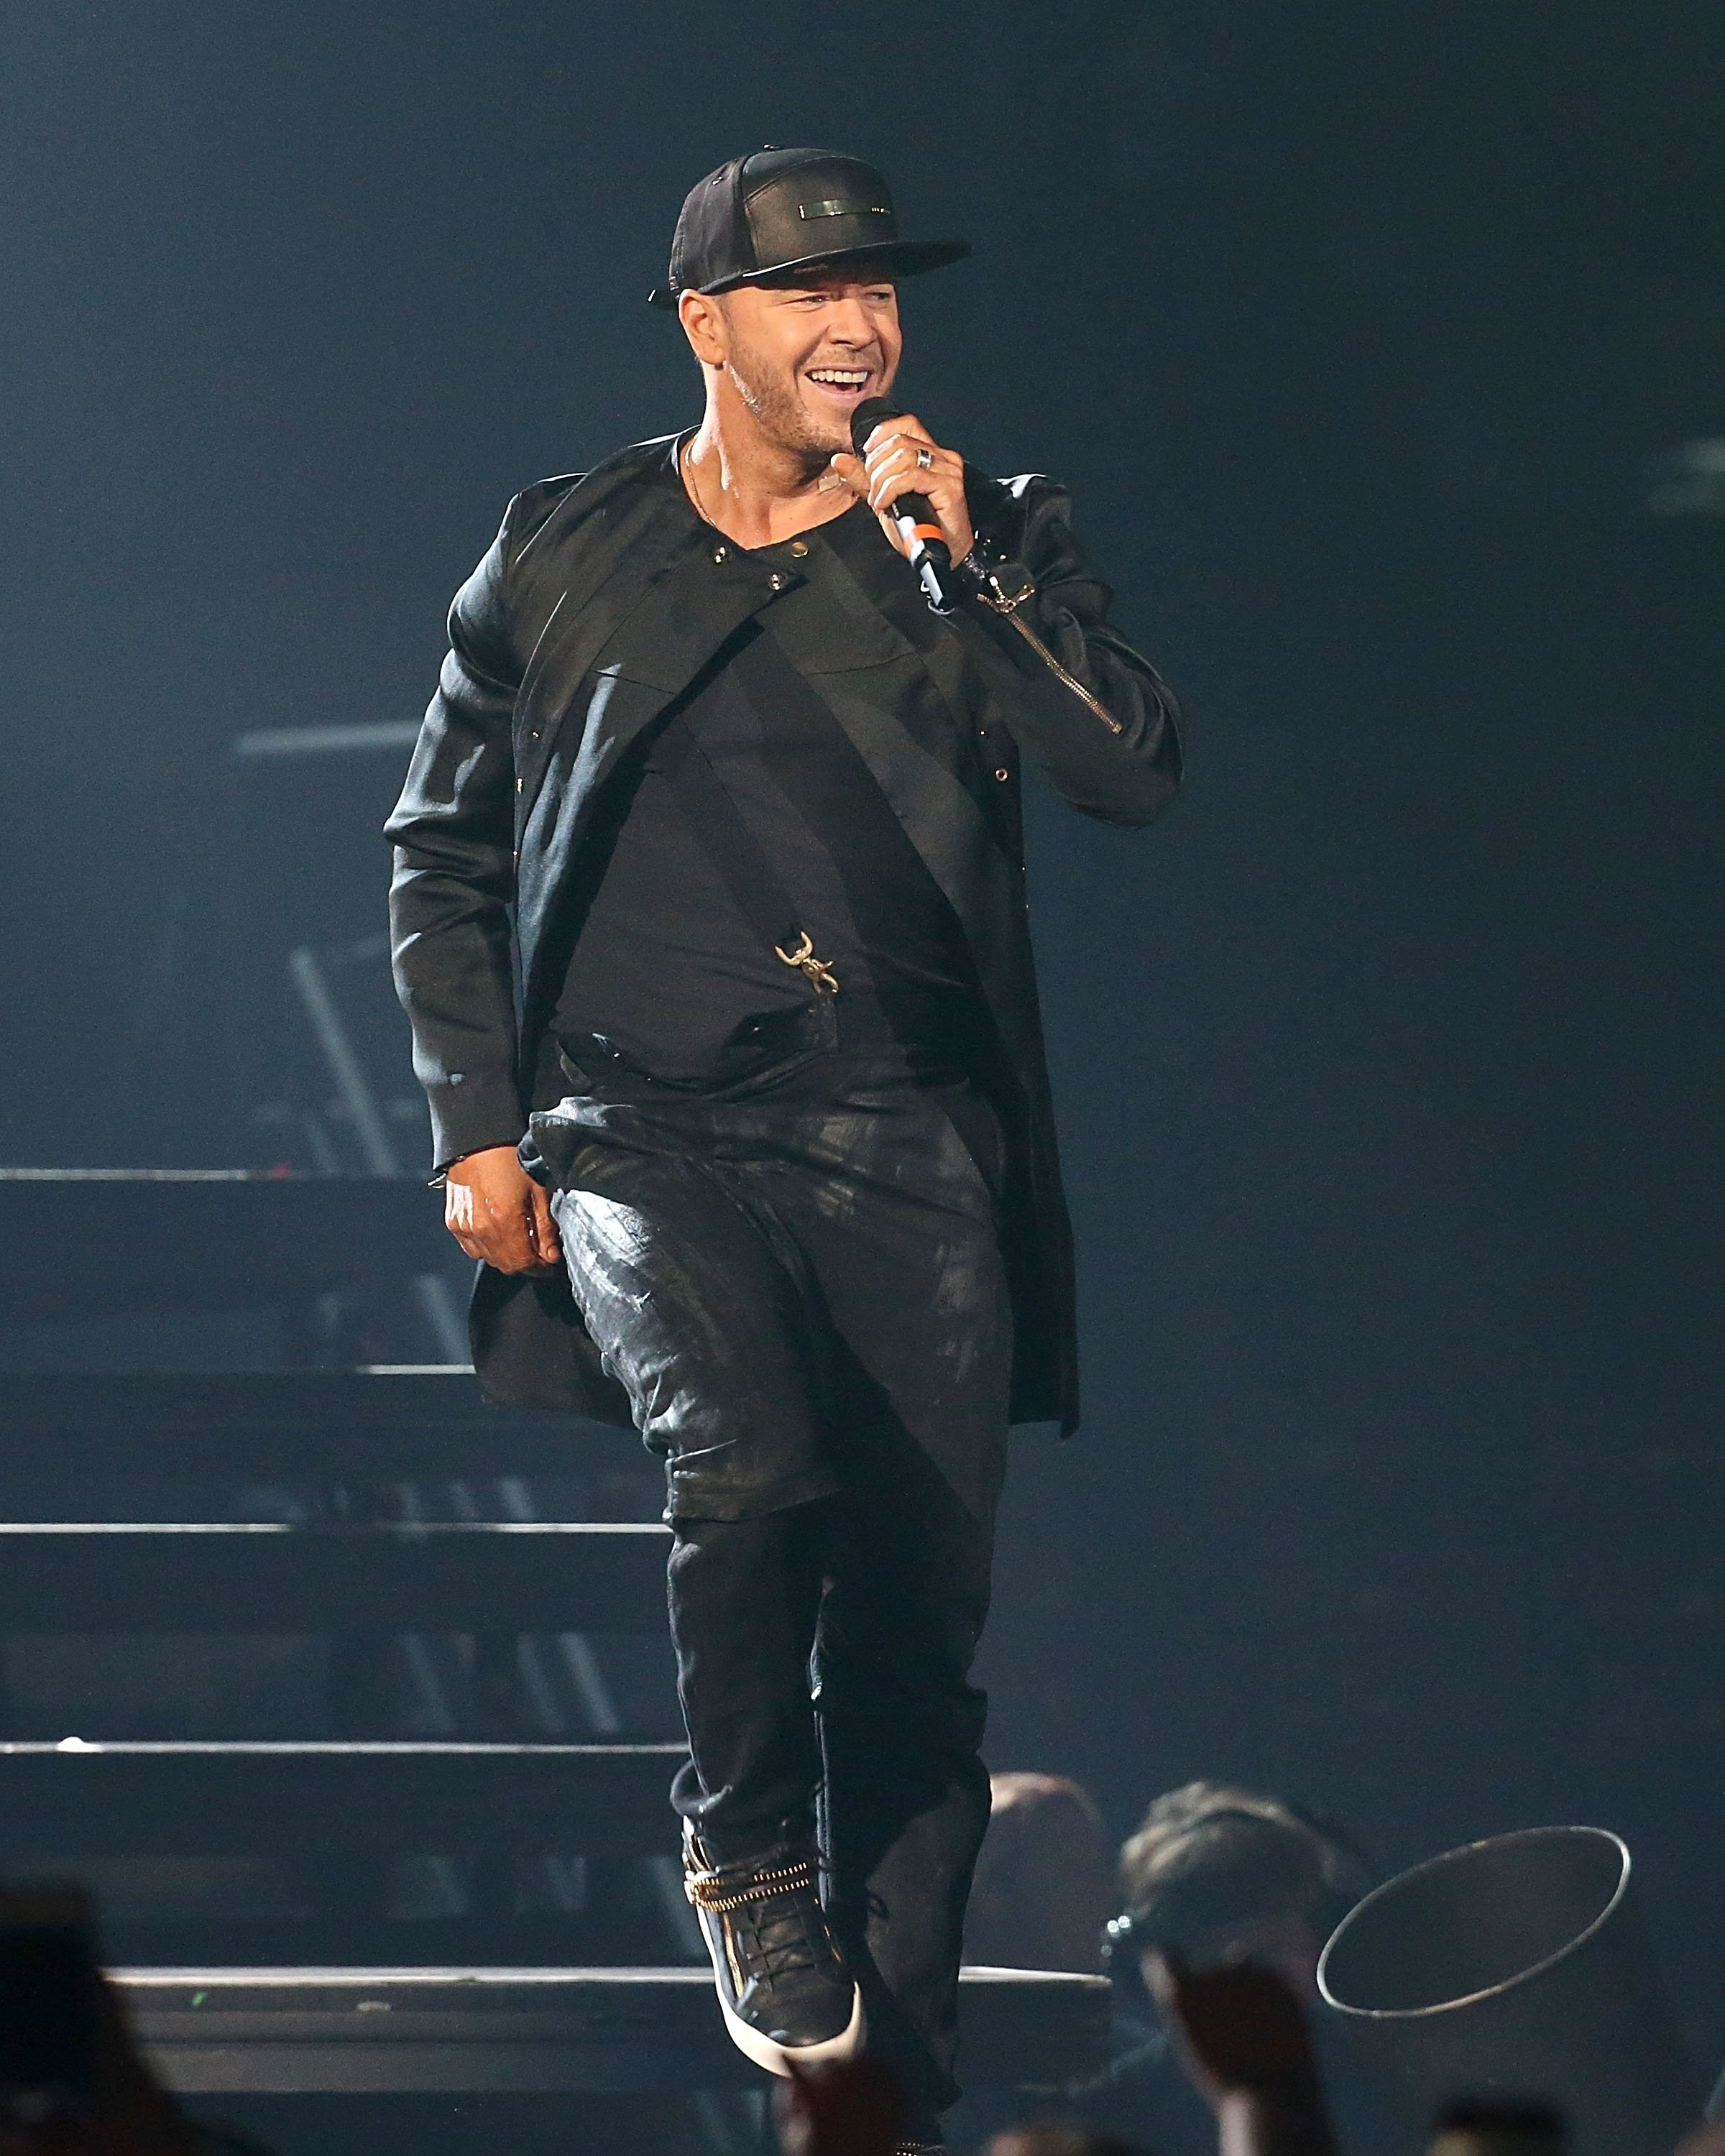 Donnie Wahlberg performs in concert during the Total Package Tour at The Frank Erwin Center in Austin, Texas on May 21, 2017   Photo: Getty Images